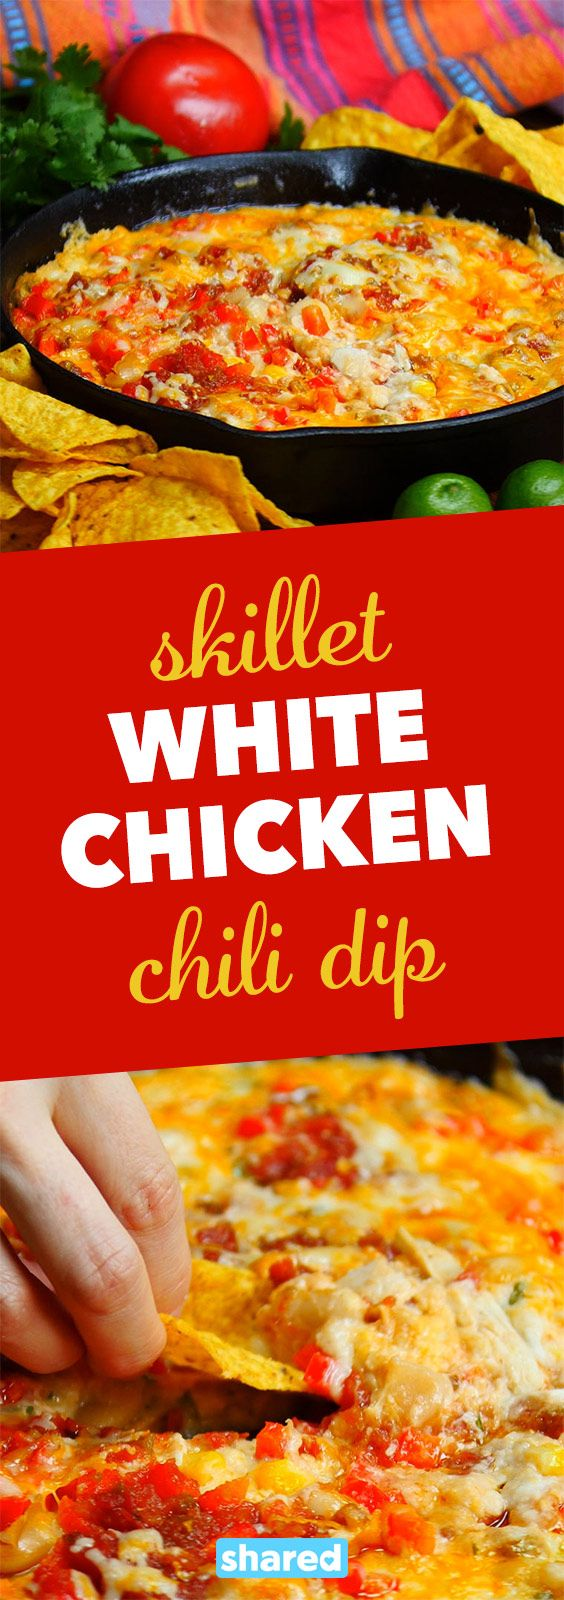 Skillet White Chicken Chili Dip - This Skillet White Chicken Chili Dip is one of those dips you bring out when you really want to impress! People won't be able to stop dipping their chips in - it's addictive ooey gooey cheesy goodness! Just wait until you add this to your recipe arsenal - you're going to love it.